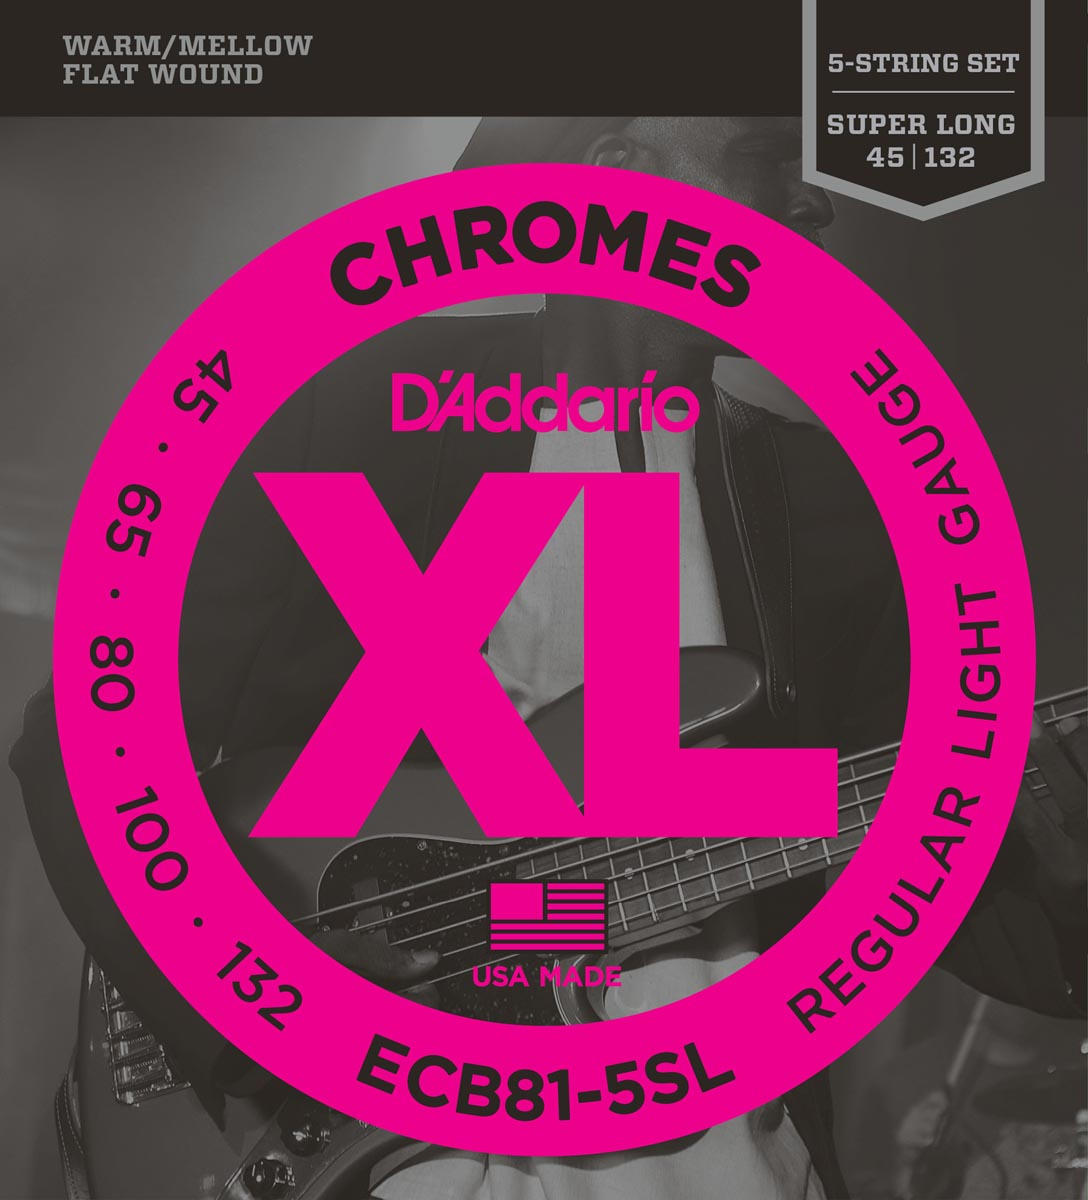 DADDARIO ECB81-5SL CHROMES 5-STRING, LIGHT, SUPER LONG SCALE [45-132]